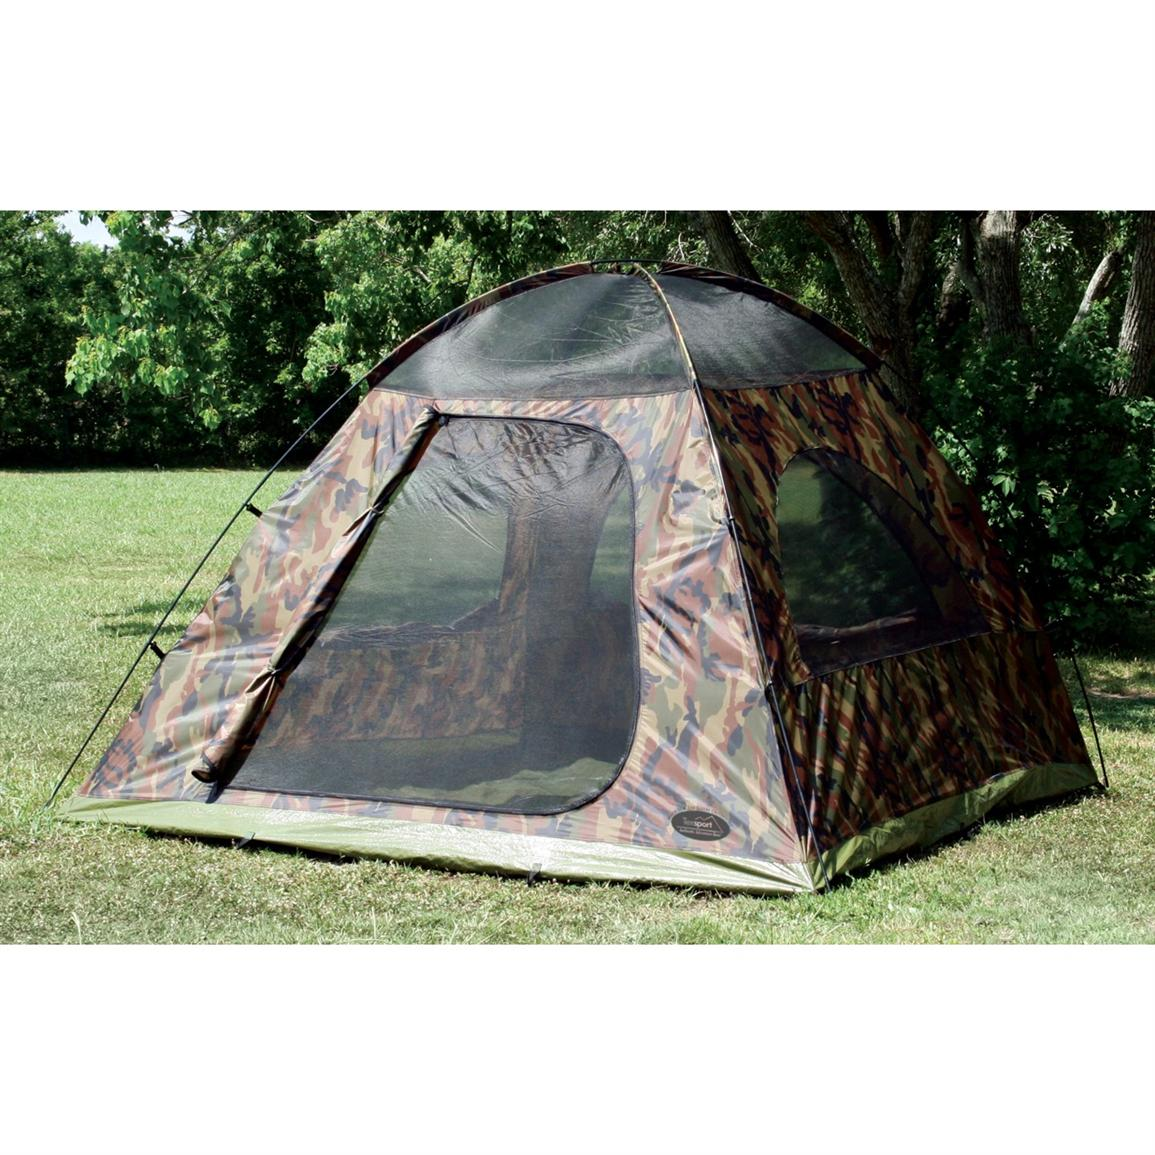 Texsport Headquarters Camouflage 5-Person Dome Tent without Rainfly